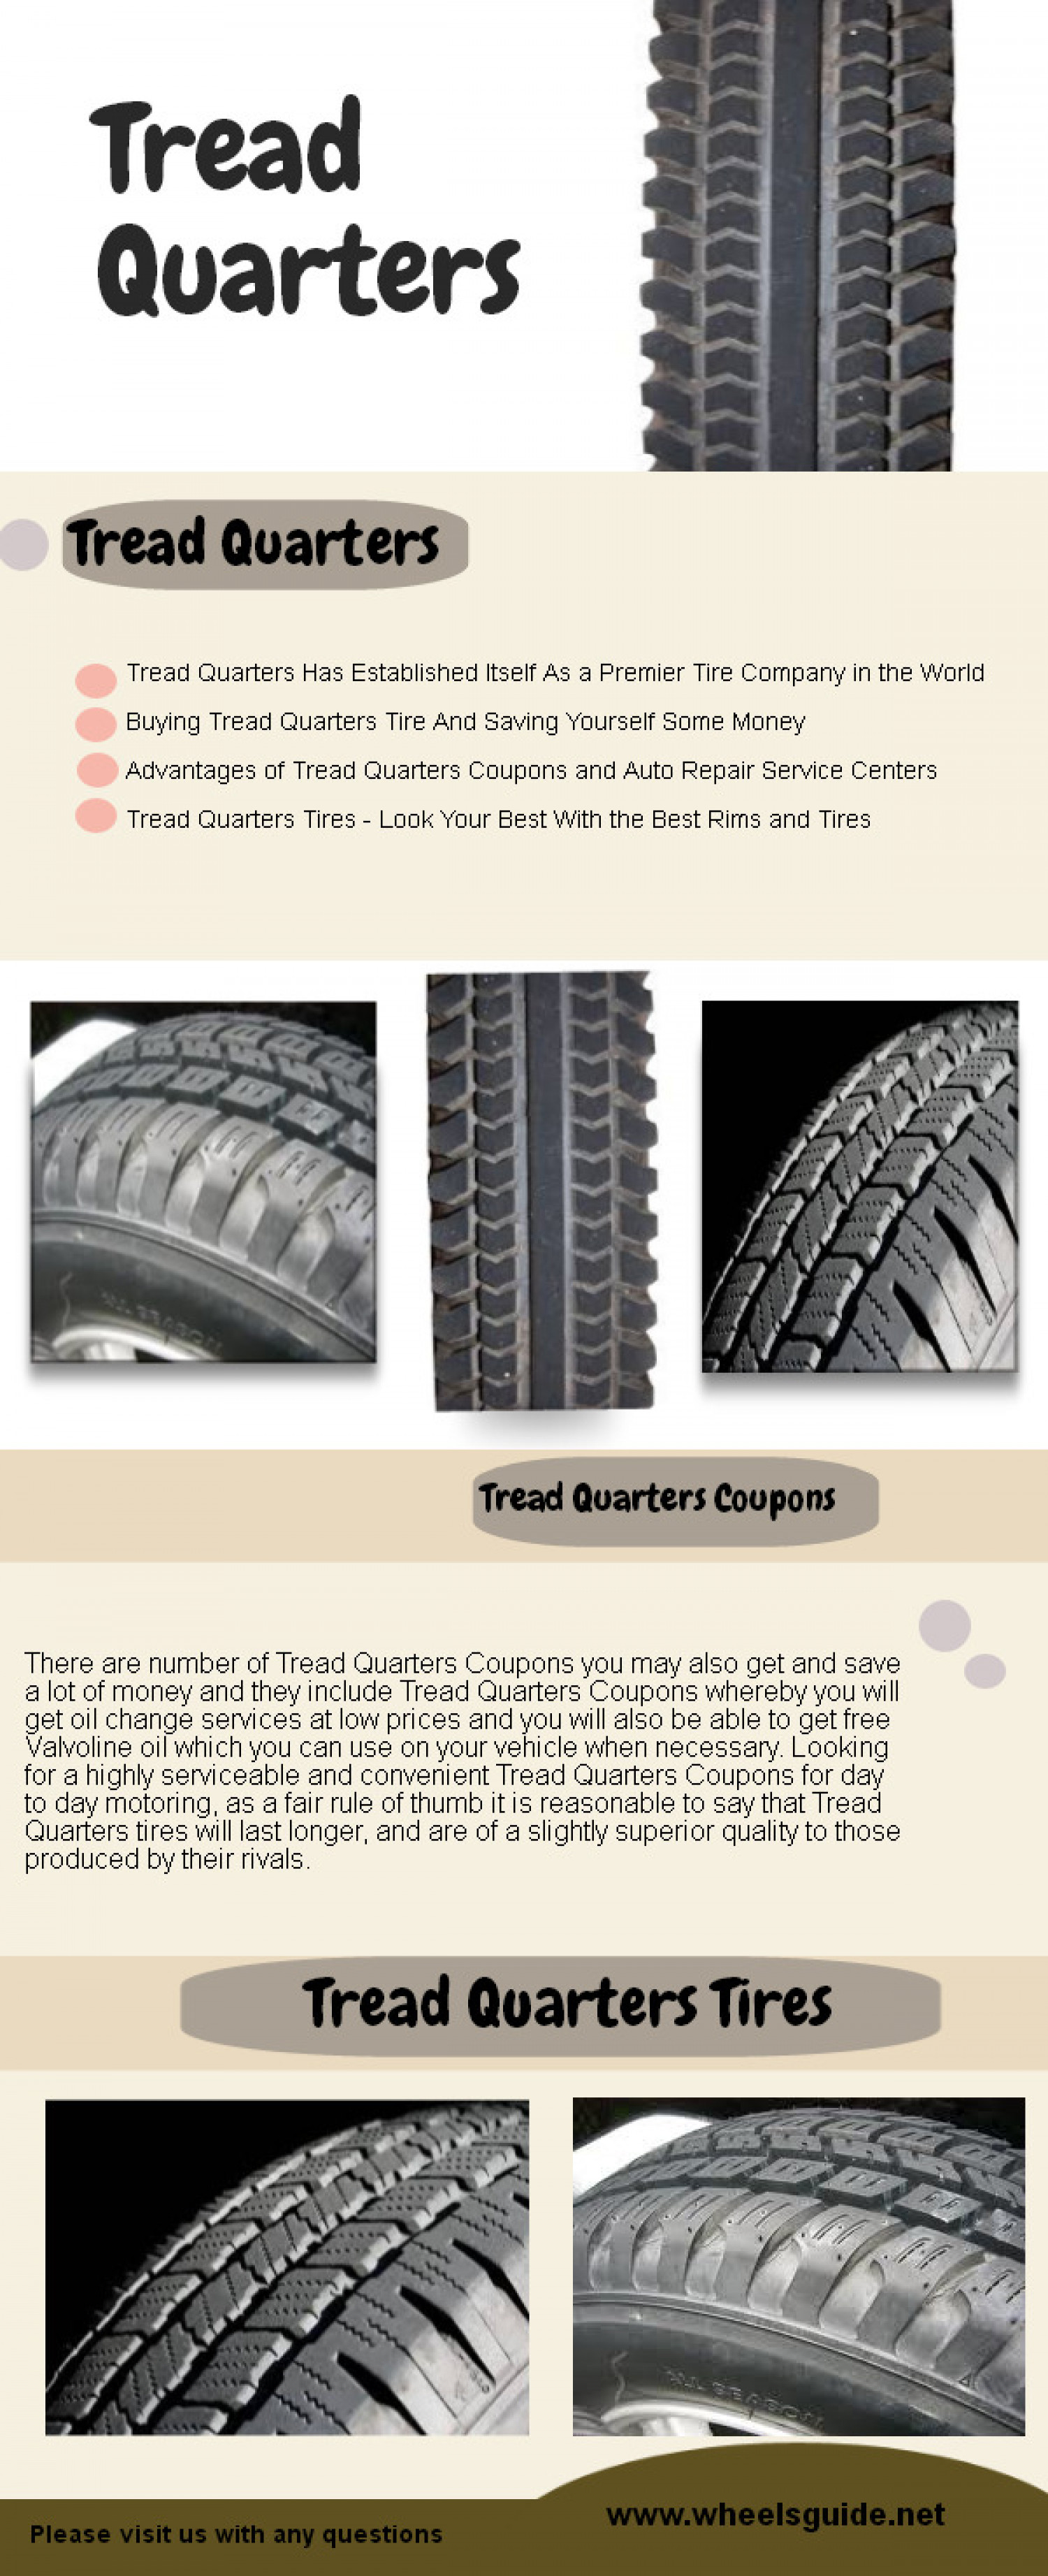 Tread Quarters Infographic